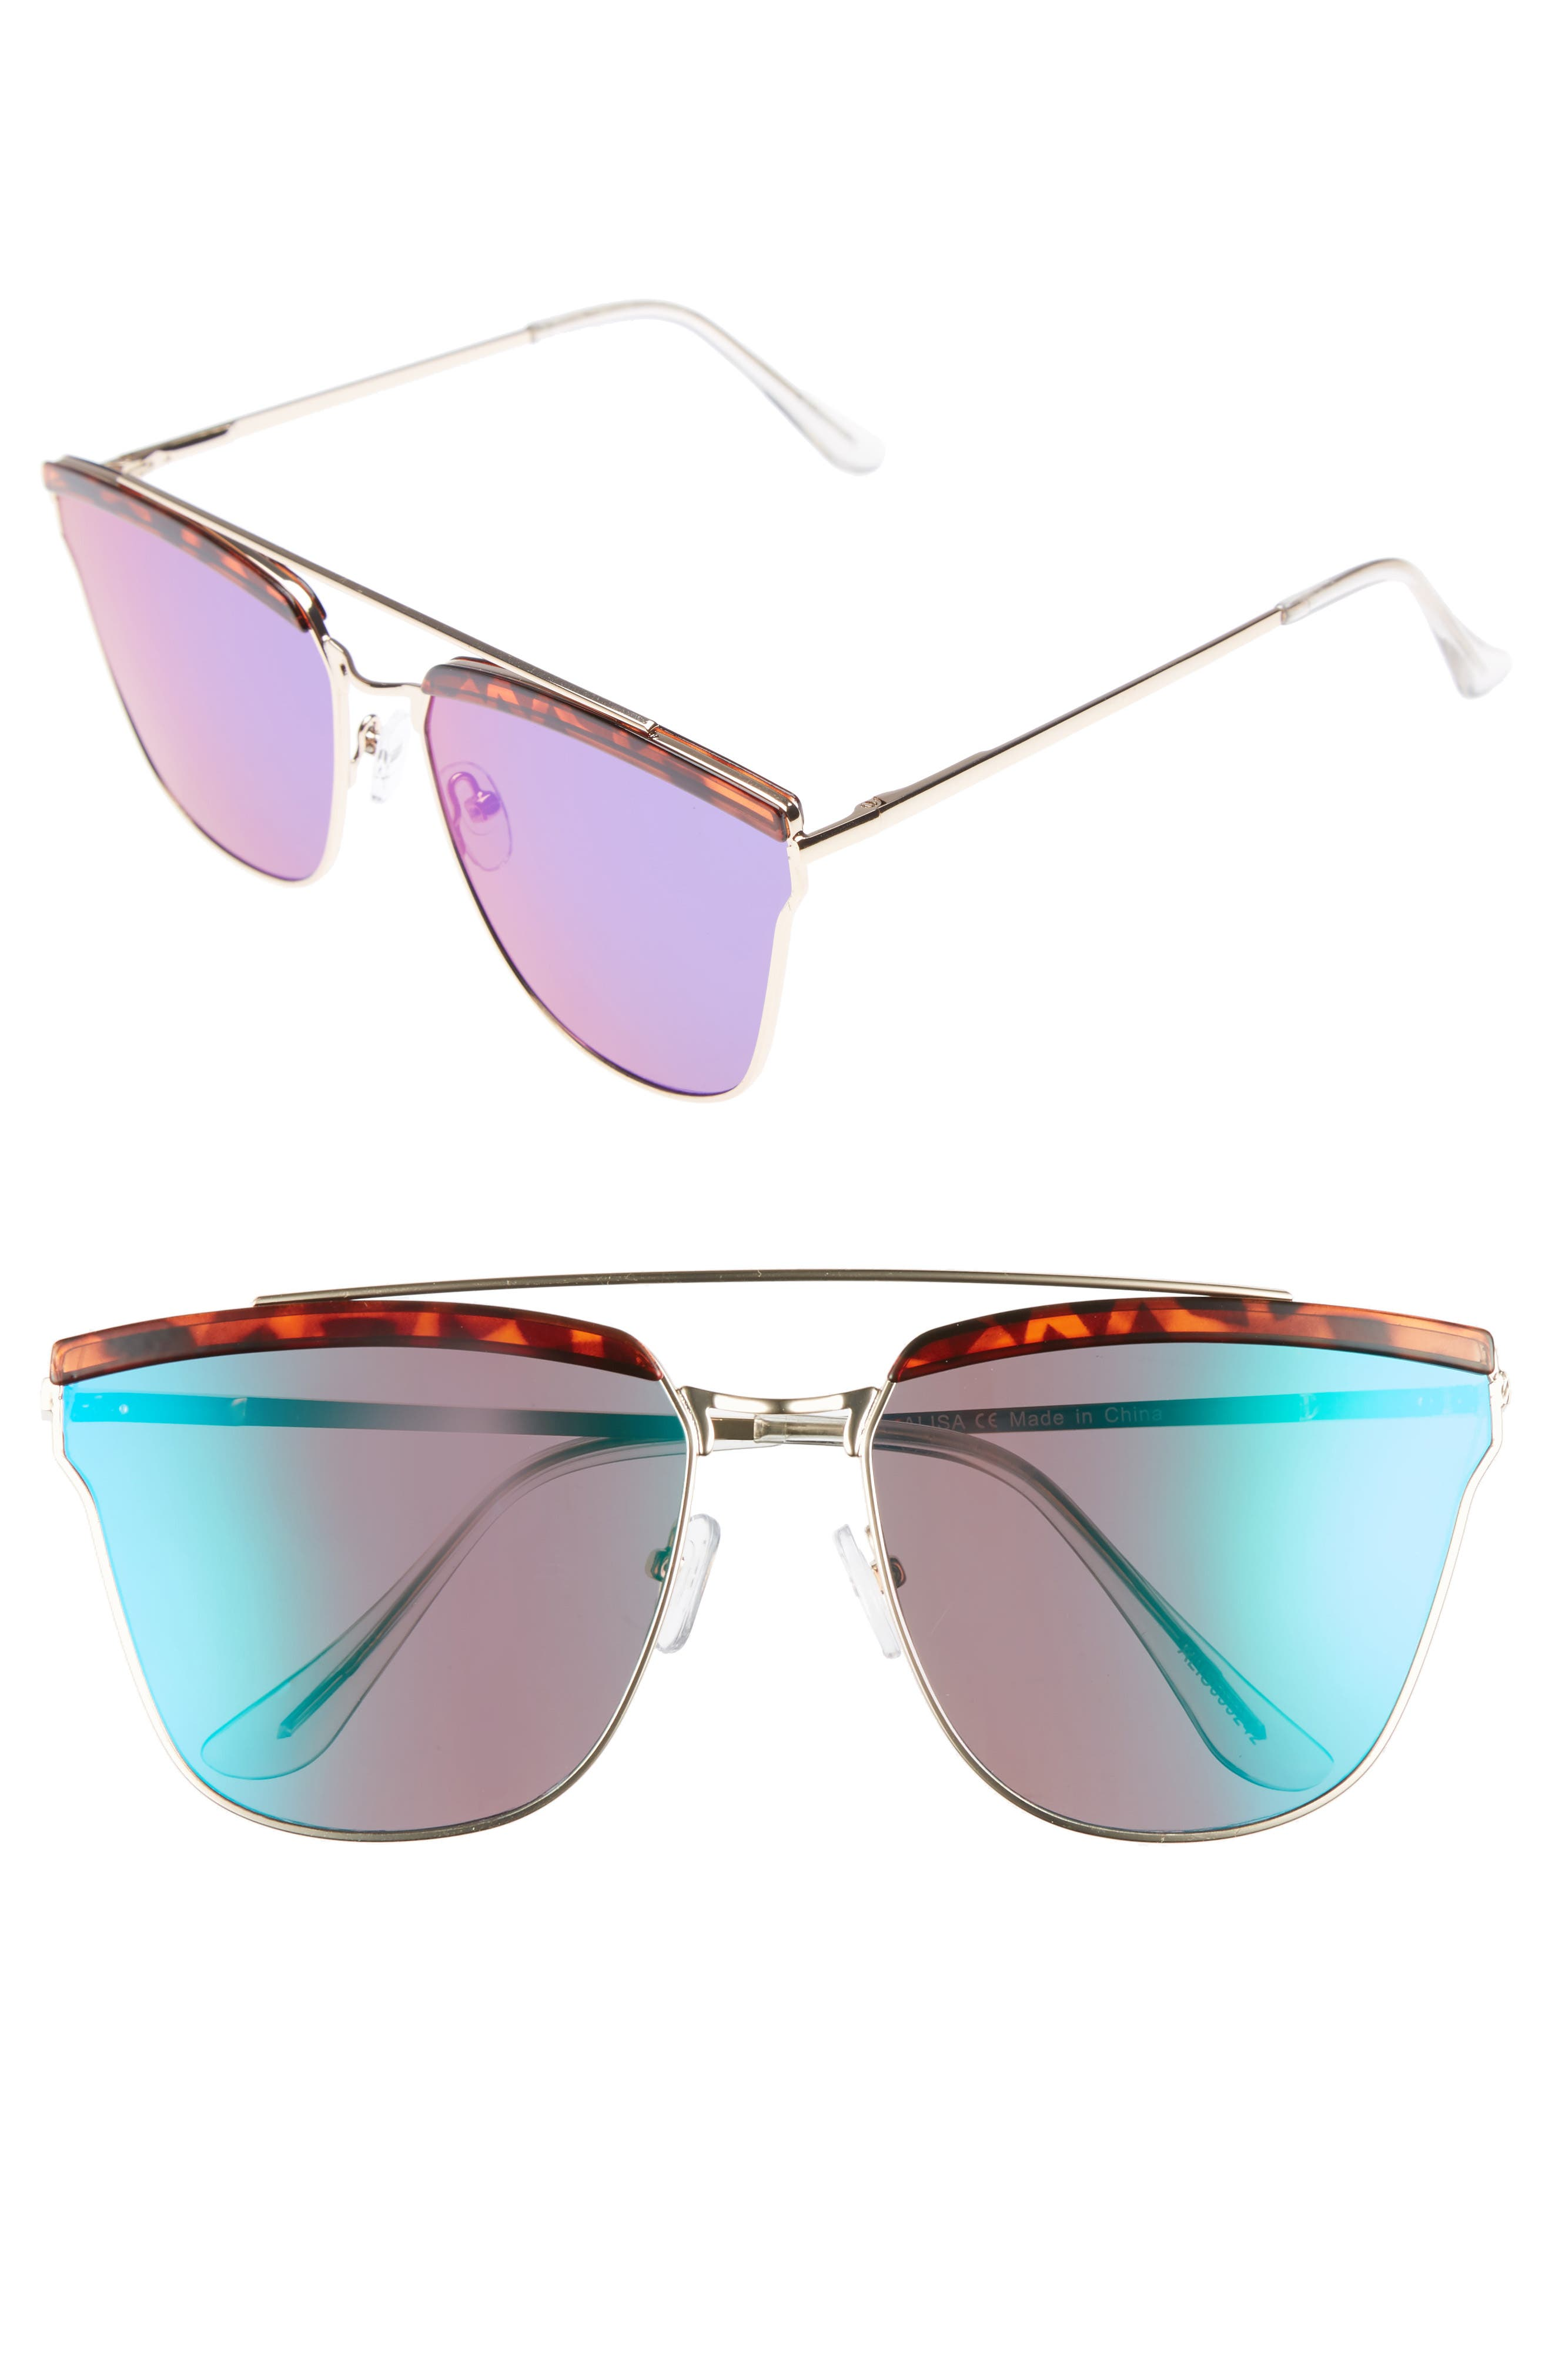 60mm Mirror Sunglasses,                             Main thumbnail 1, color,                             Gold/ Tort